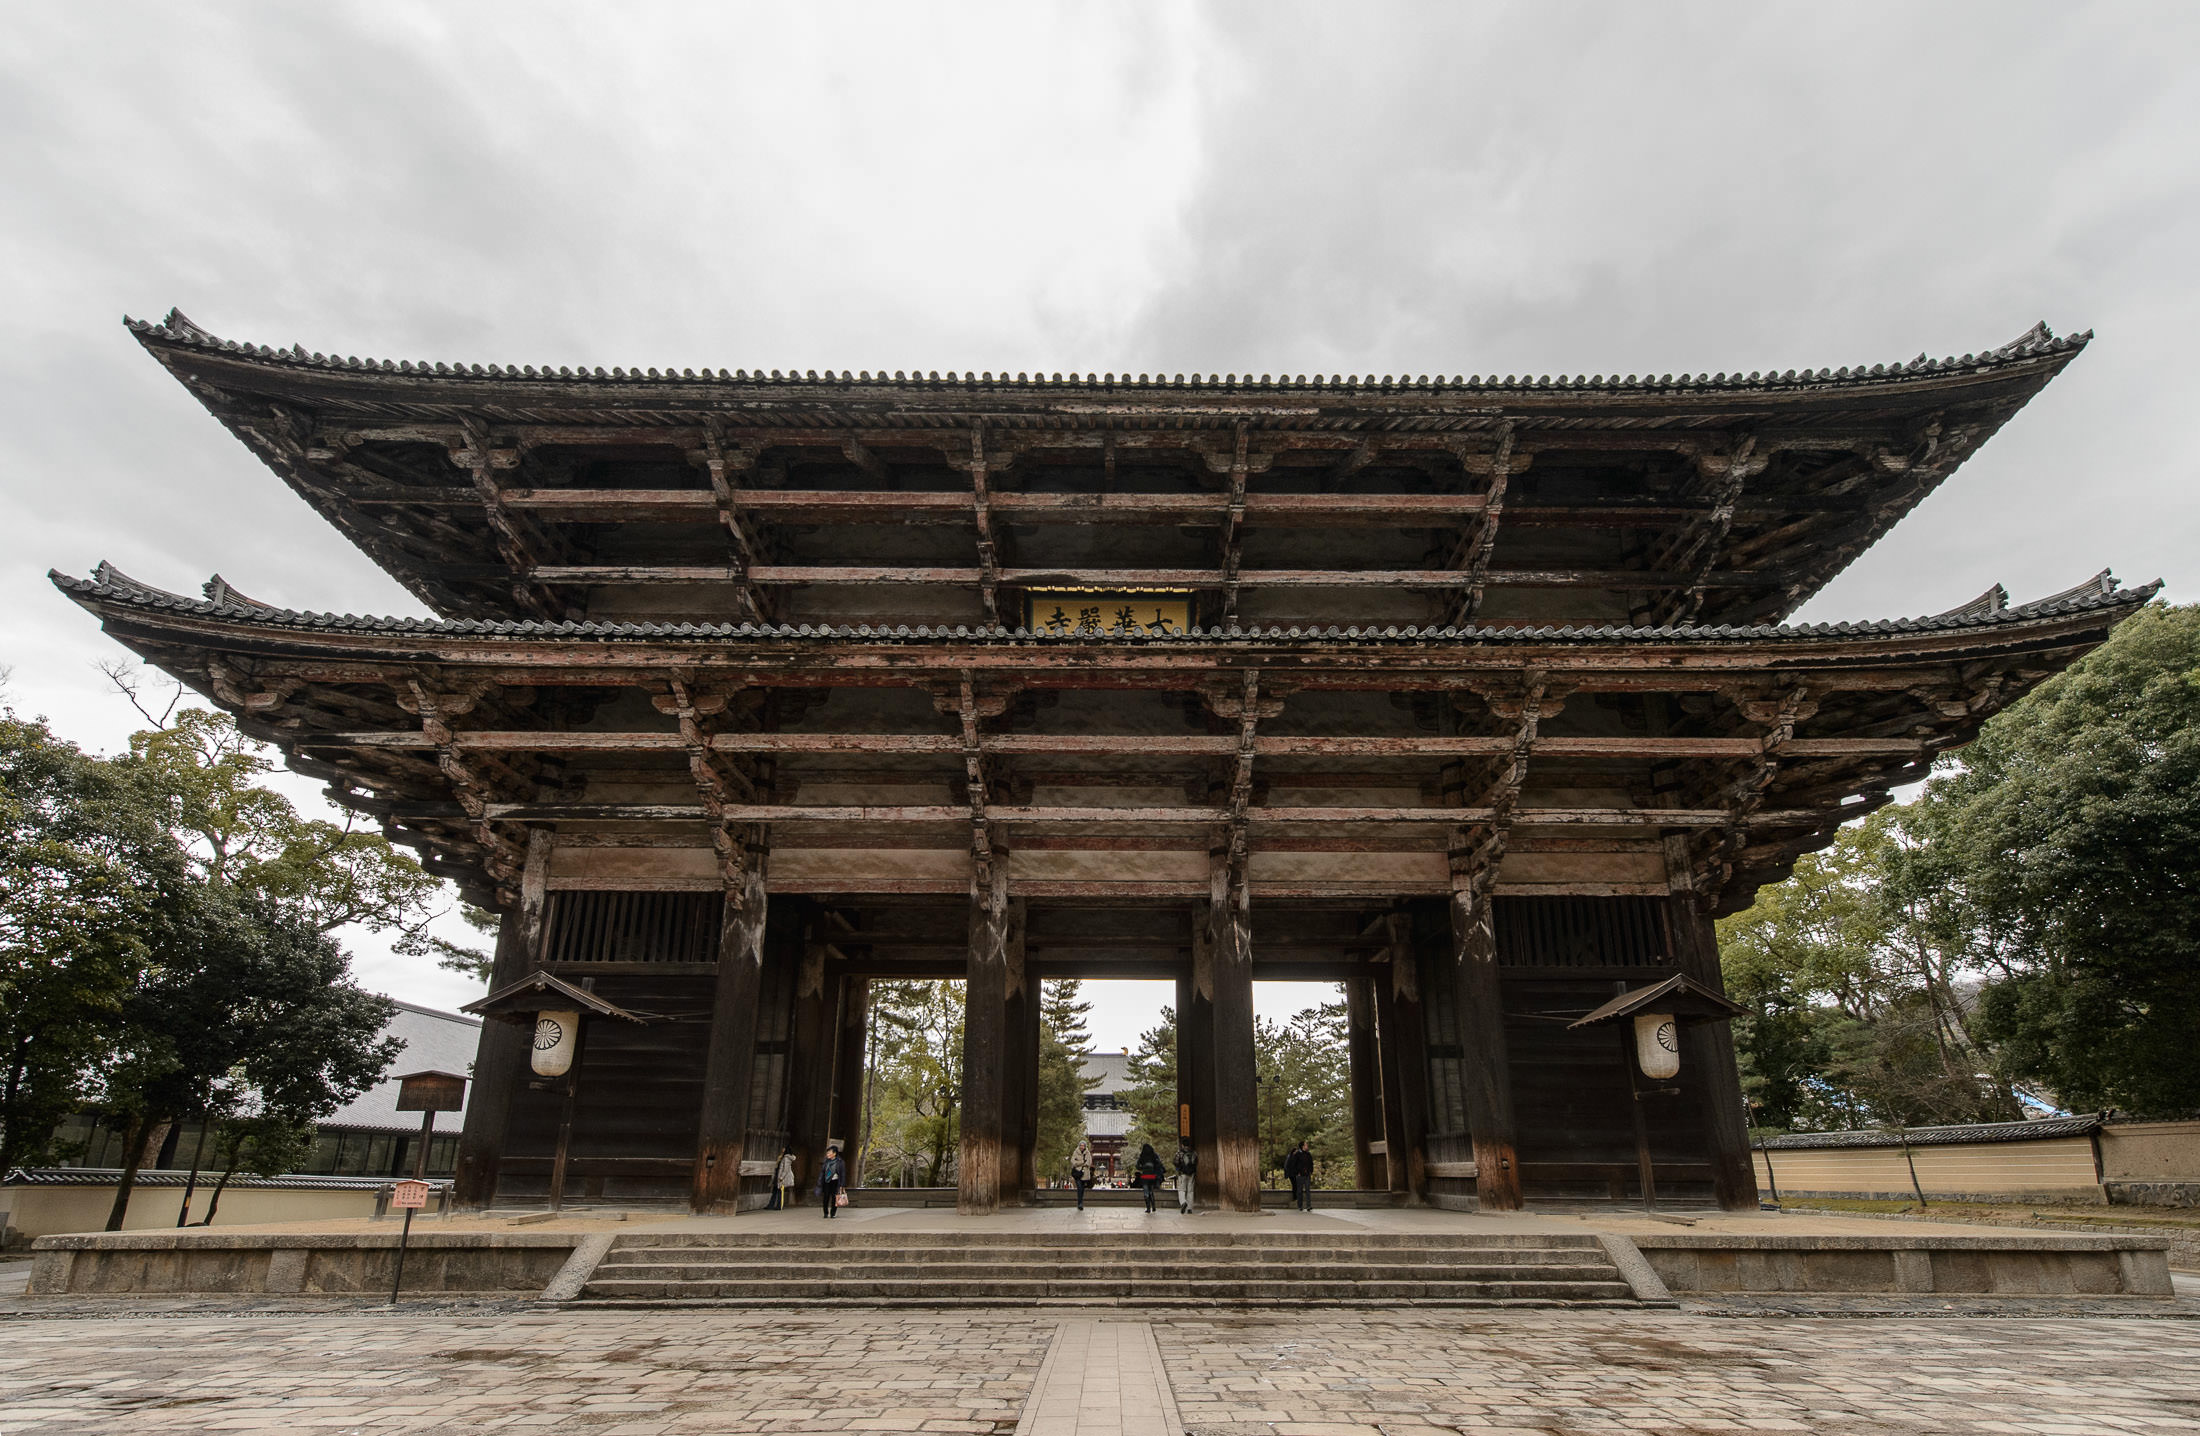 Jeffrey Friedls Blog » On the Approach to the Todaiji Temple in Nara